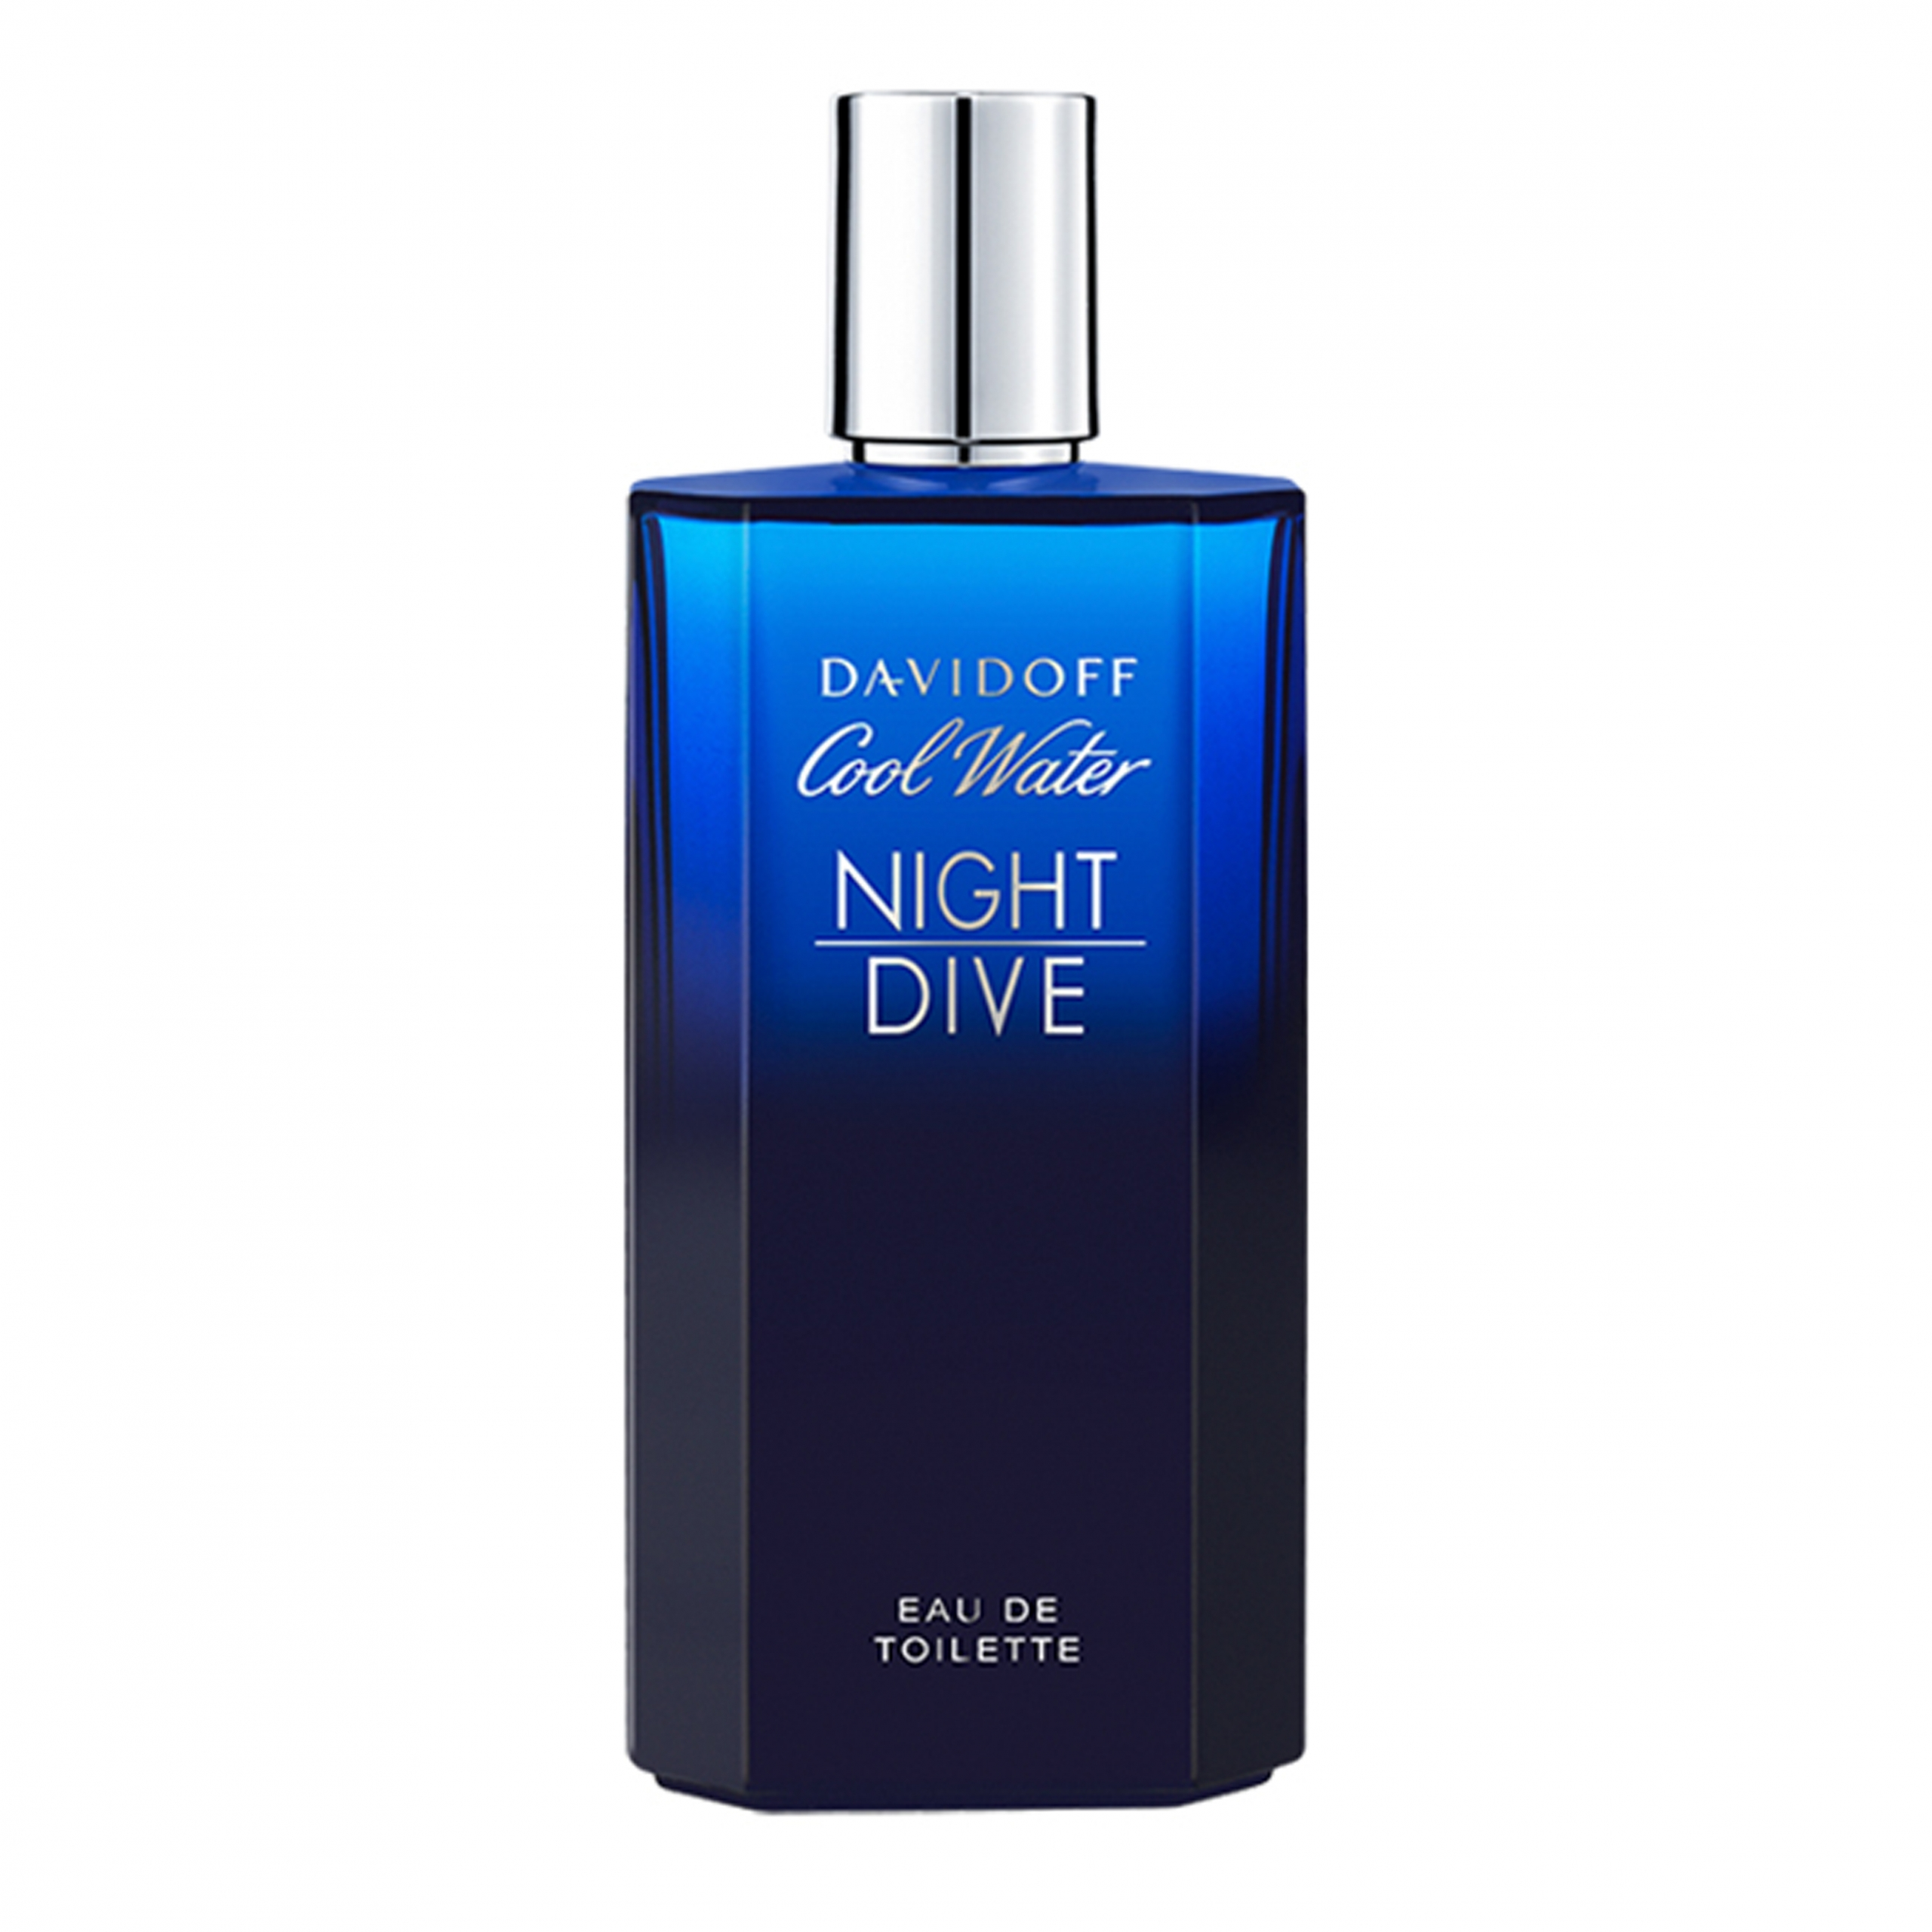 DAVIDOFF - COOL WATER NIGHT DIVE EDT 125 ML